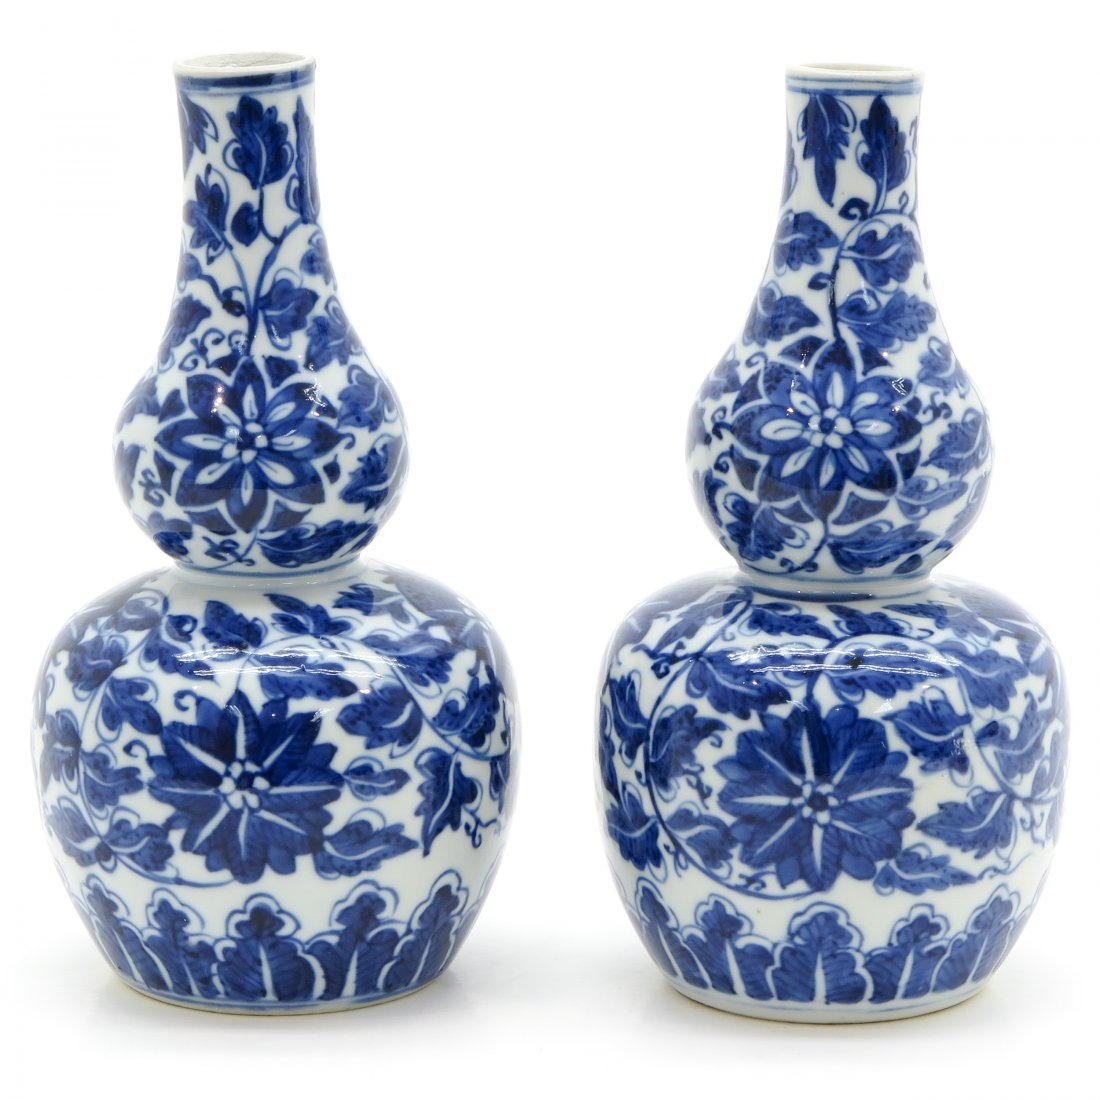 Pair of China Porcelain Double Gourd Vases